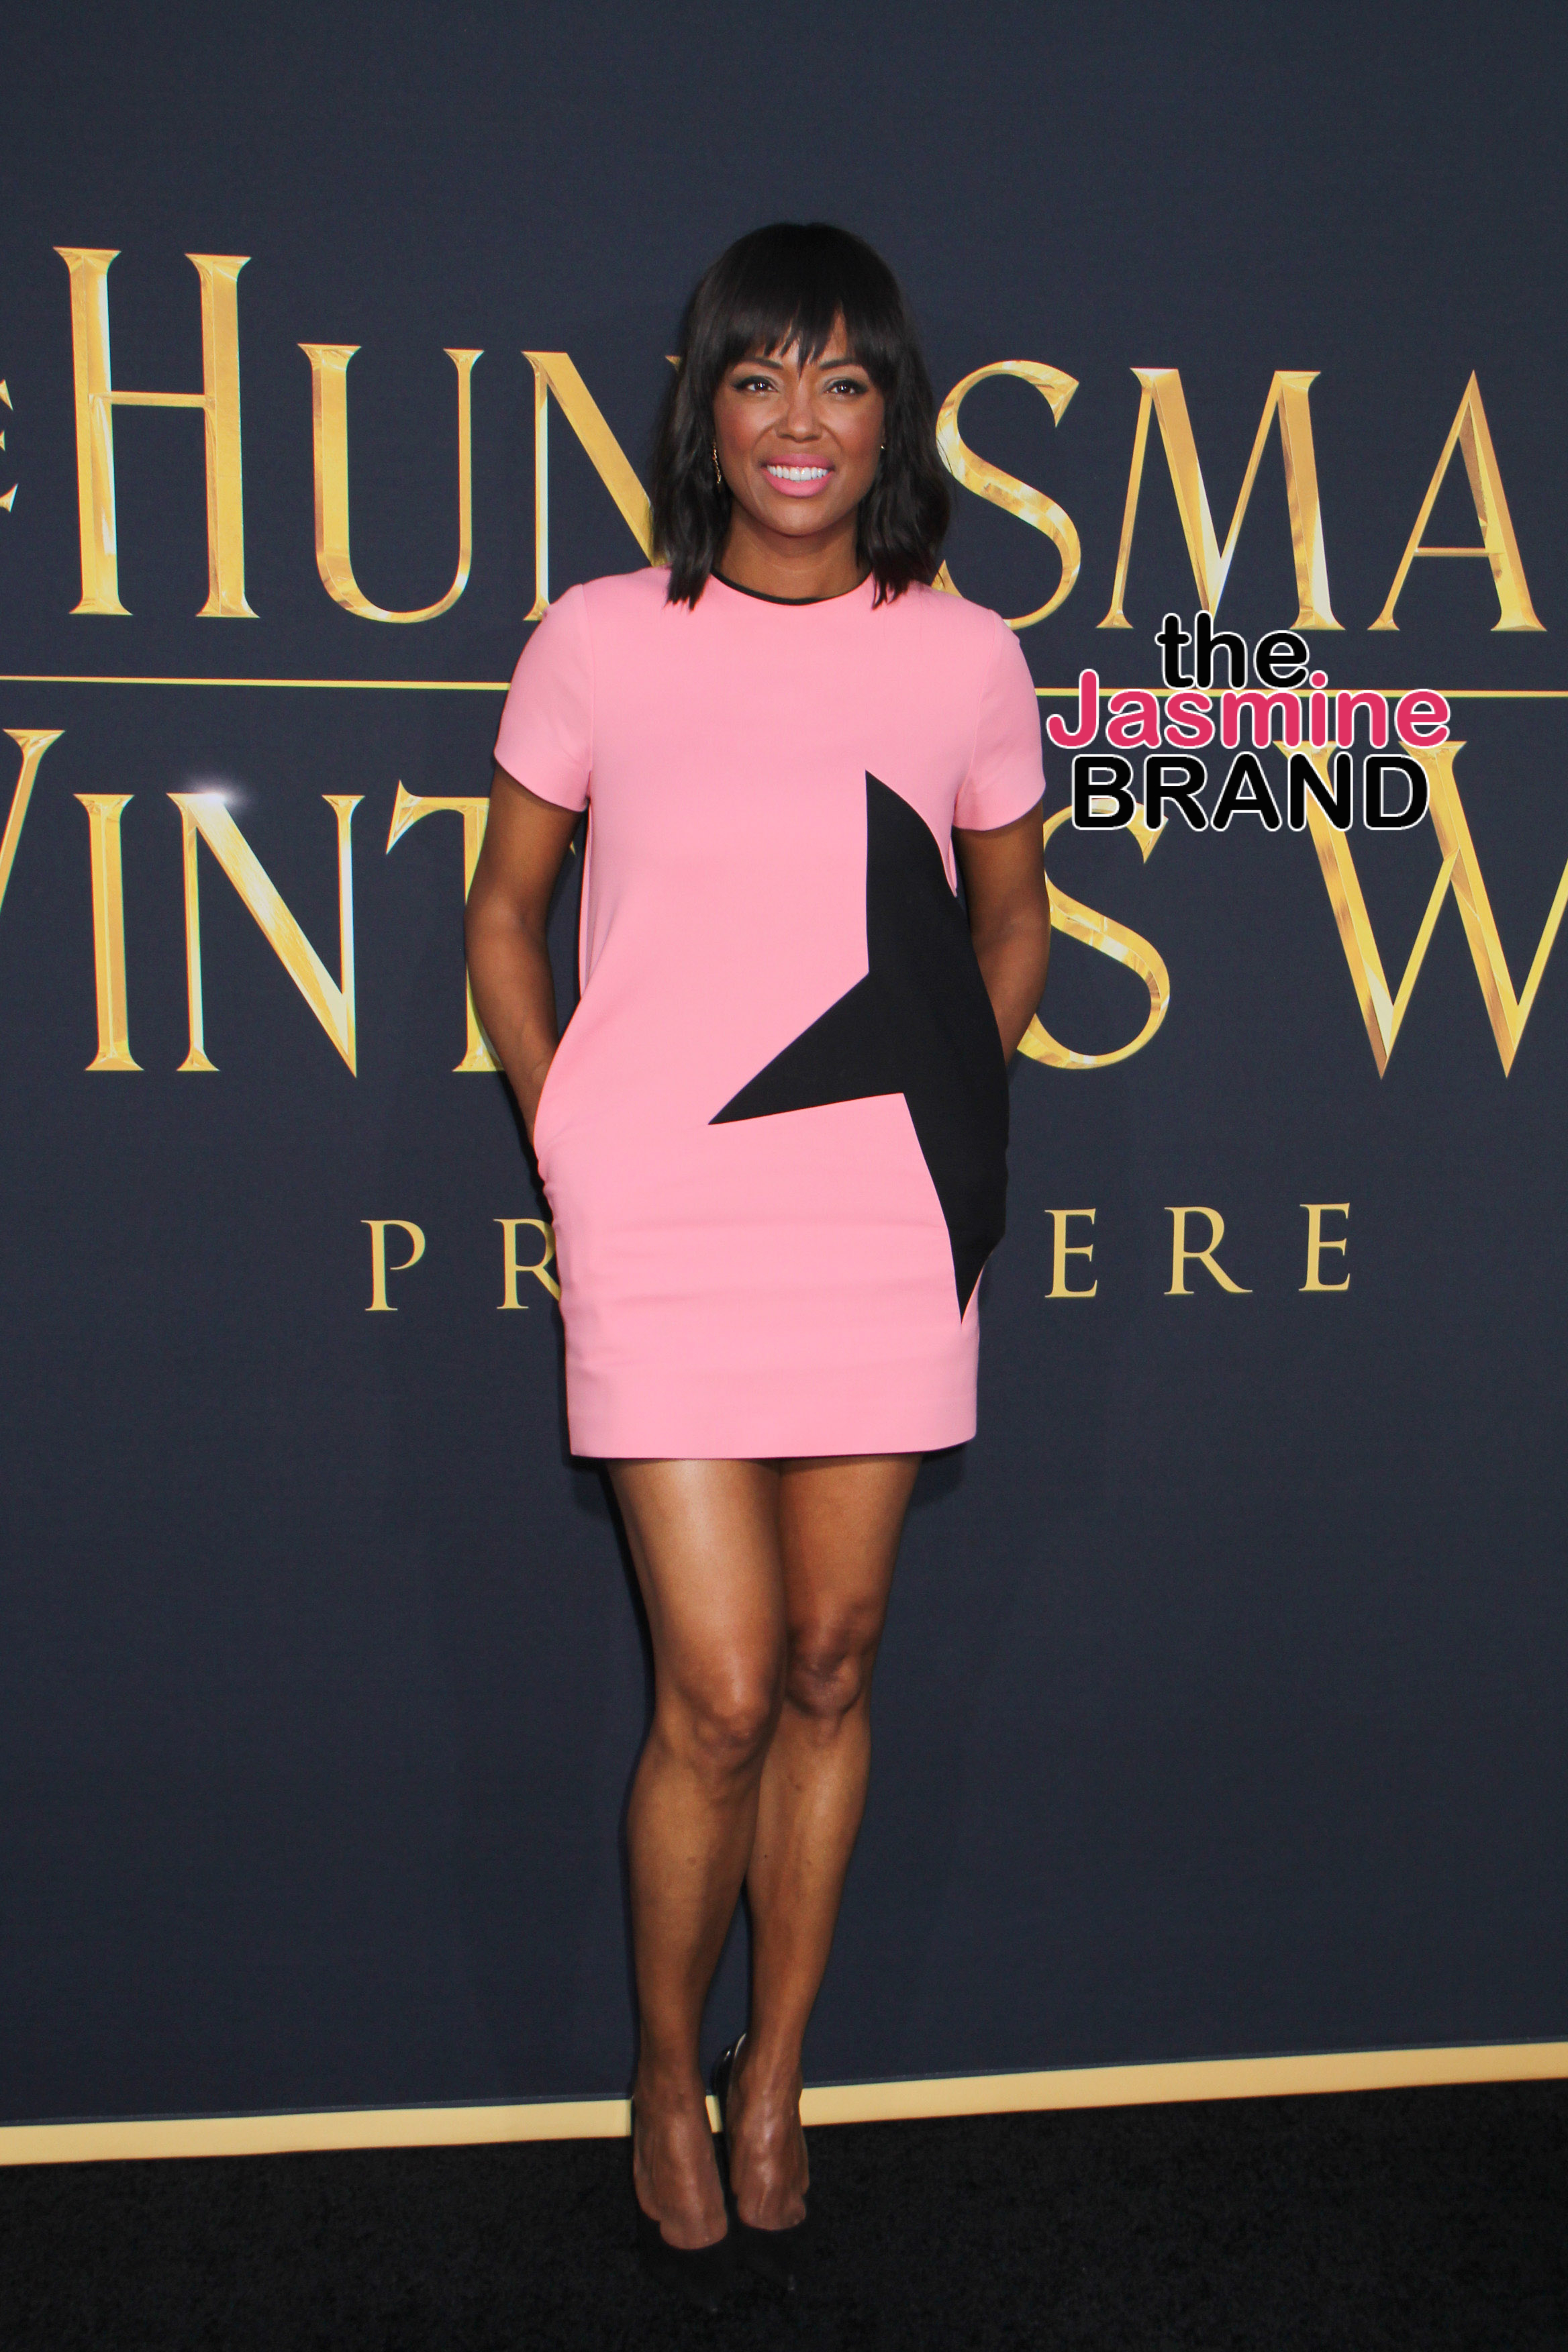 "04/11/2016 - Aisha Tyler - ""The Huntsman: Winter's War"" Los Angeles Premiere - Arrivals - Regency Village Theatre - Westwood, CA, USA - Keywords: Vertical, Film Premiere, Movie Premiere, Arrival, Portrait, Photography, Film Industry, Red Carpet Event, Arts Culture and Entertainment, Celebrity, Celebrities, Regency Village Theater, Universal Pictures, Westwood Neighborhood of Los Angeles, California Orientation: Portrait Face Count: 1 - False - Photo Credit: Kazuki Hirata / HollywoodNewsWire.net / PRPhotos.com - Contact (1-866-551-7827) - Portrait Face Count: 1"